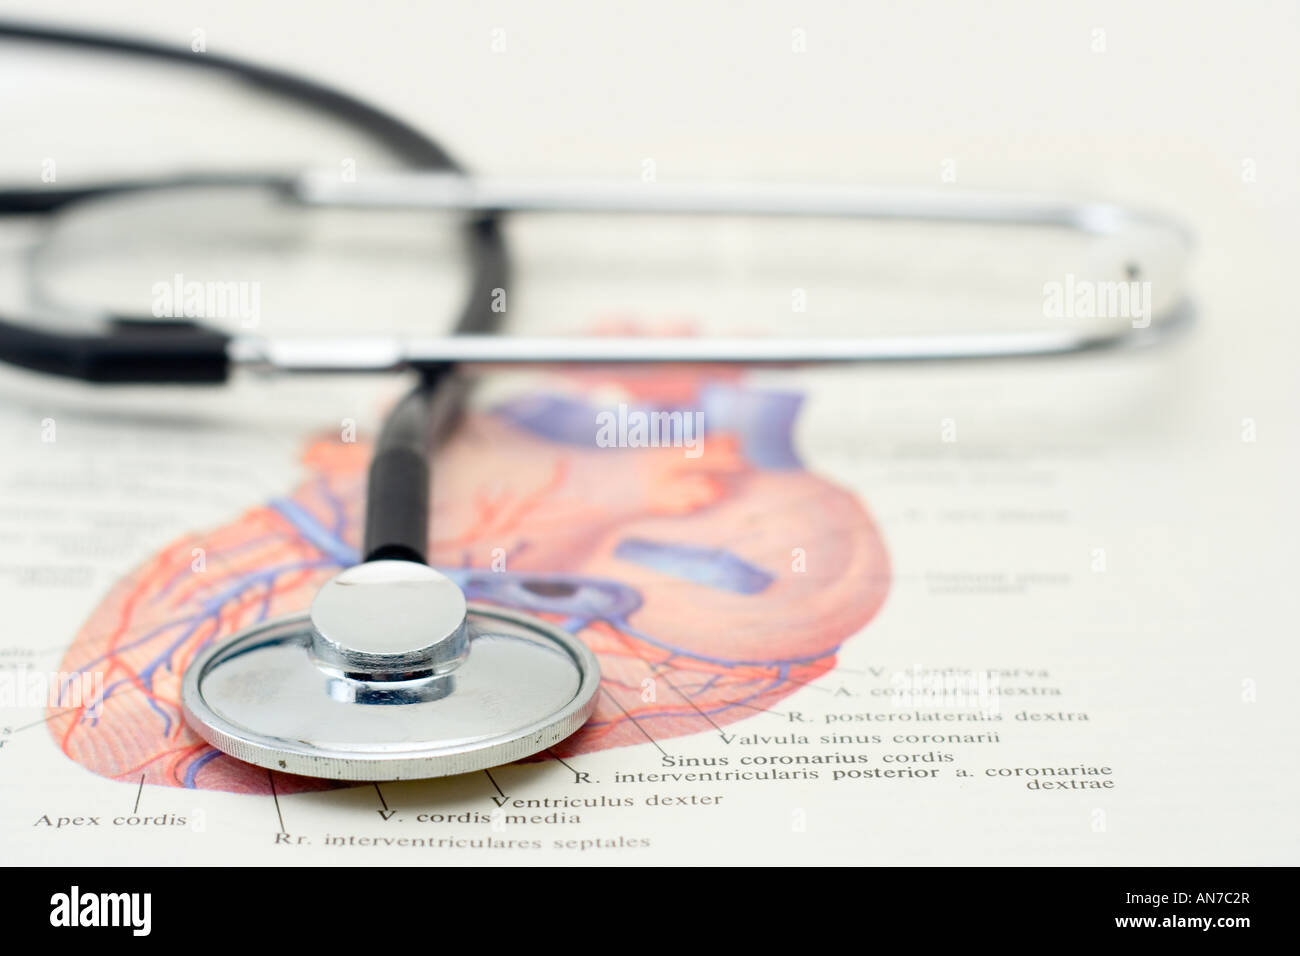 Medical College Anatomy Stock Photos & Medical College Anatomy Stock ...